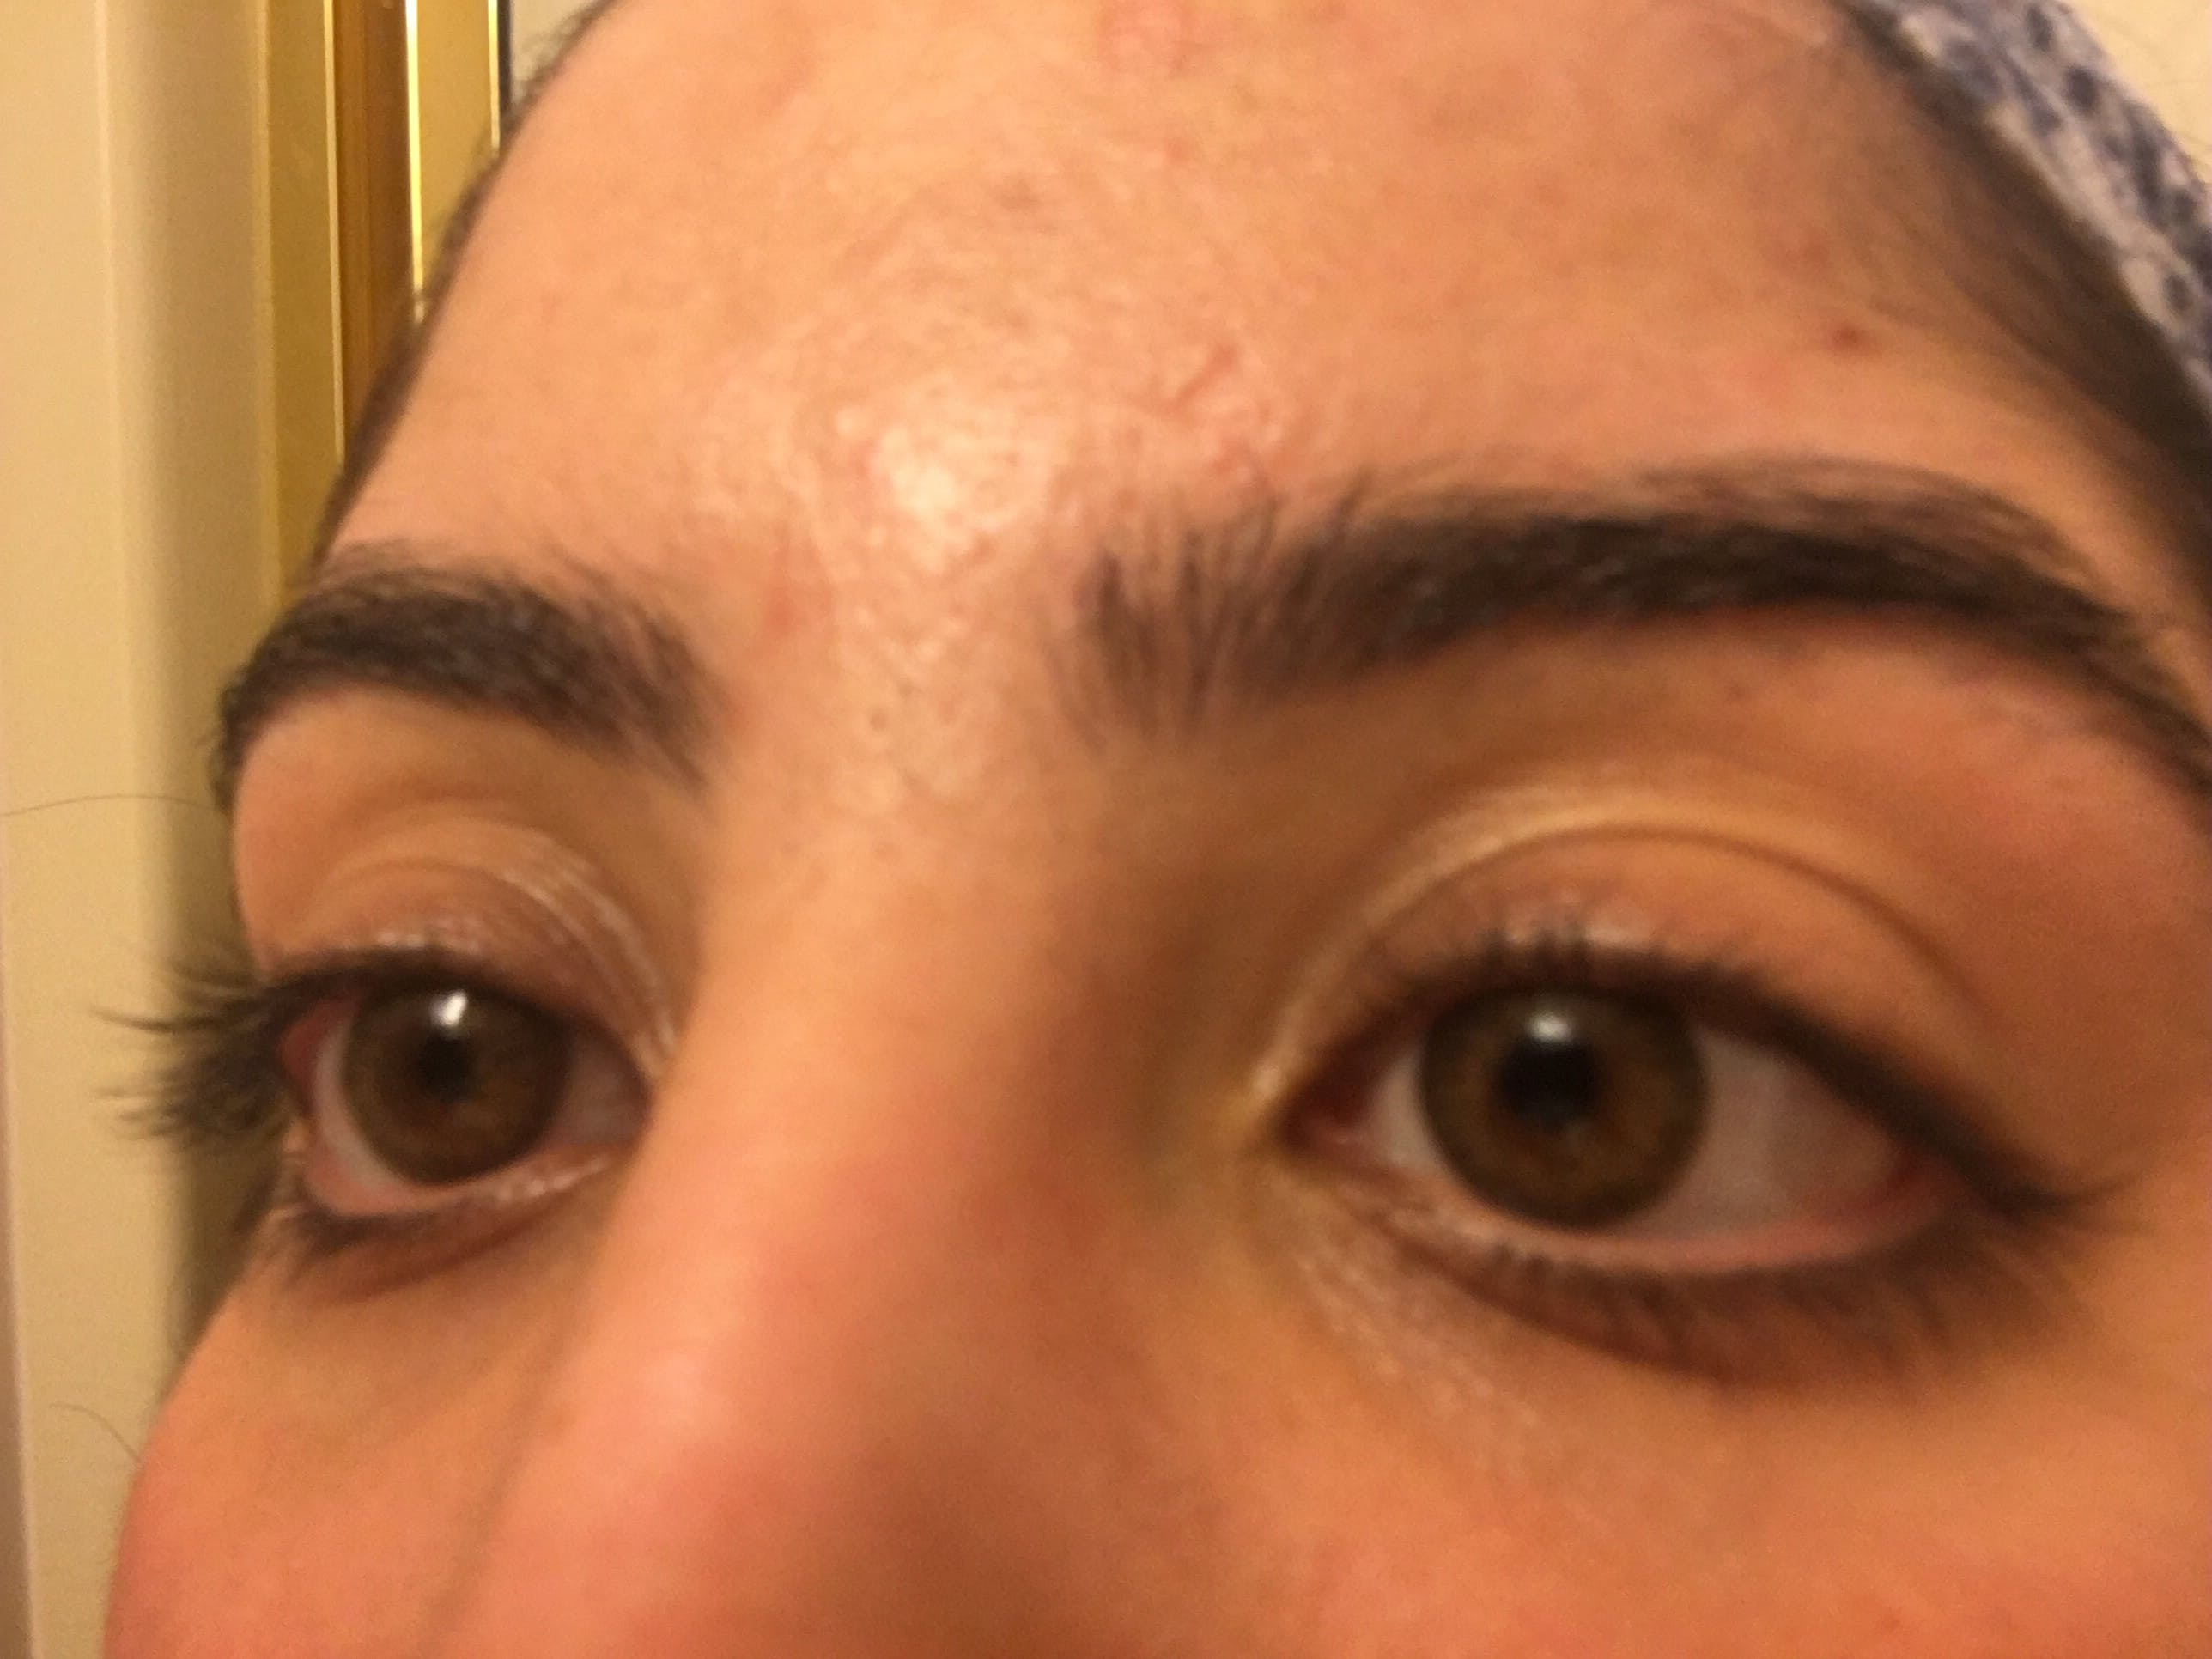 bafd781b0153b Buy Freshlook Colorblends Pure Hazel Colored Contacts